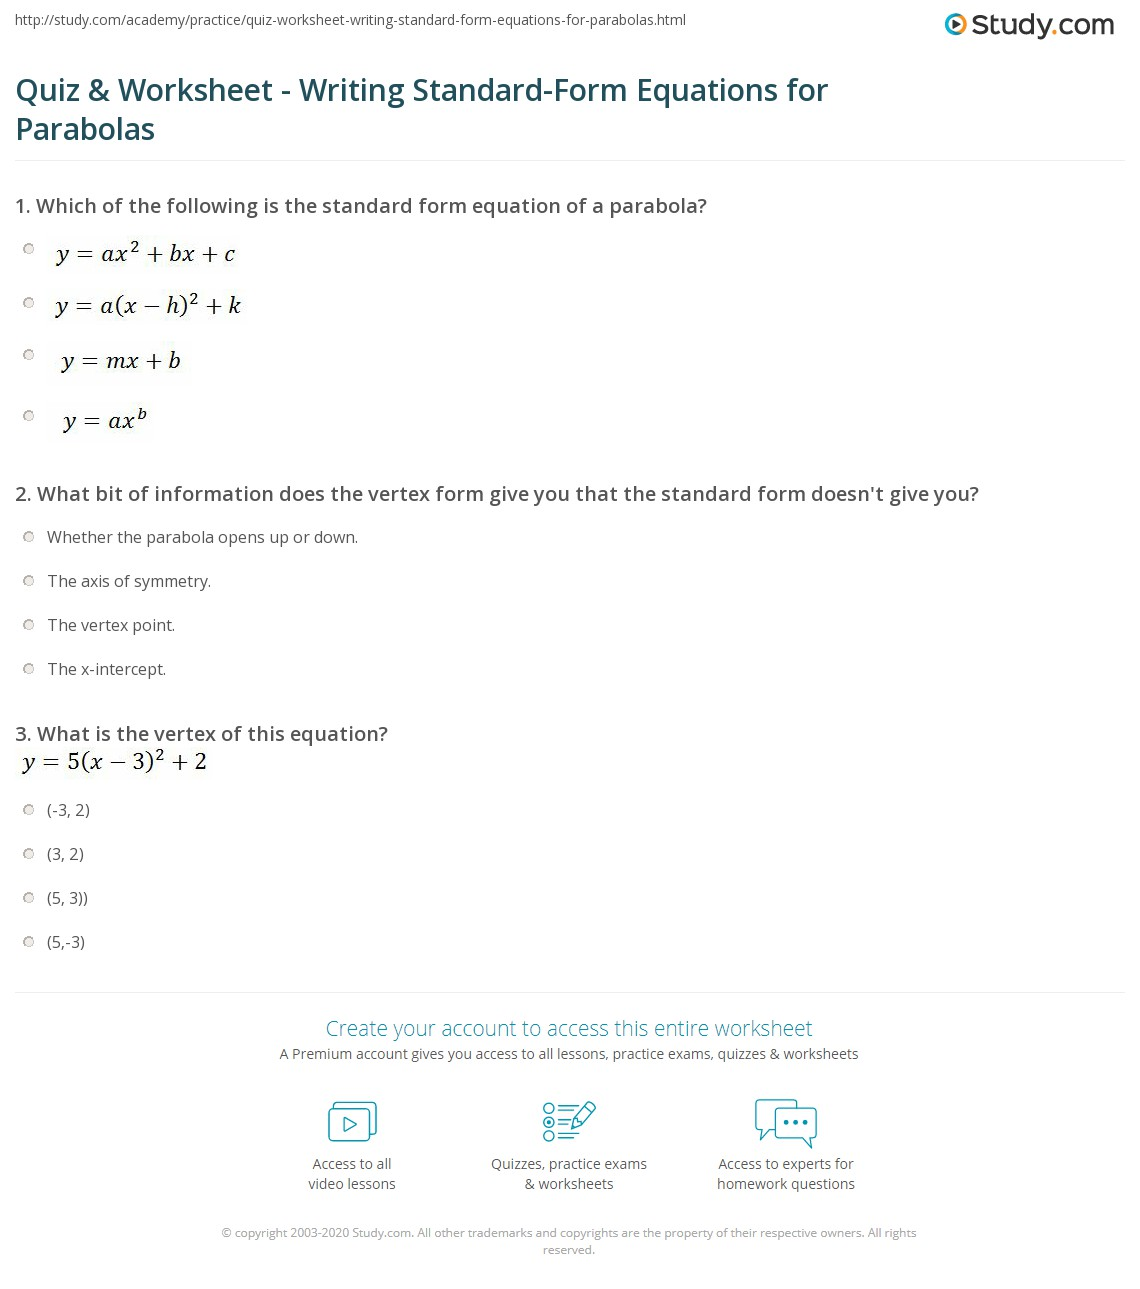 Quiz & Worksheet - Writing Standard-Form Equations for Parabolas ...